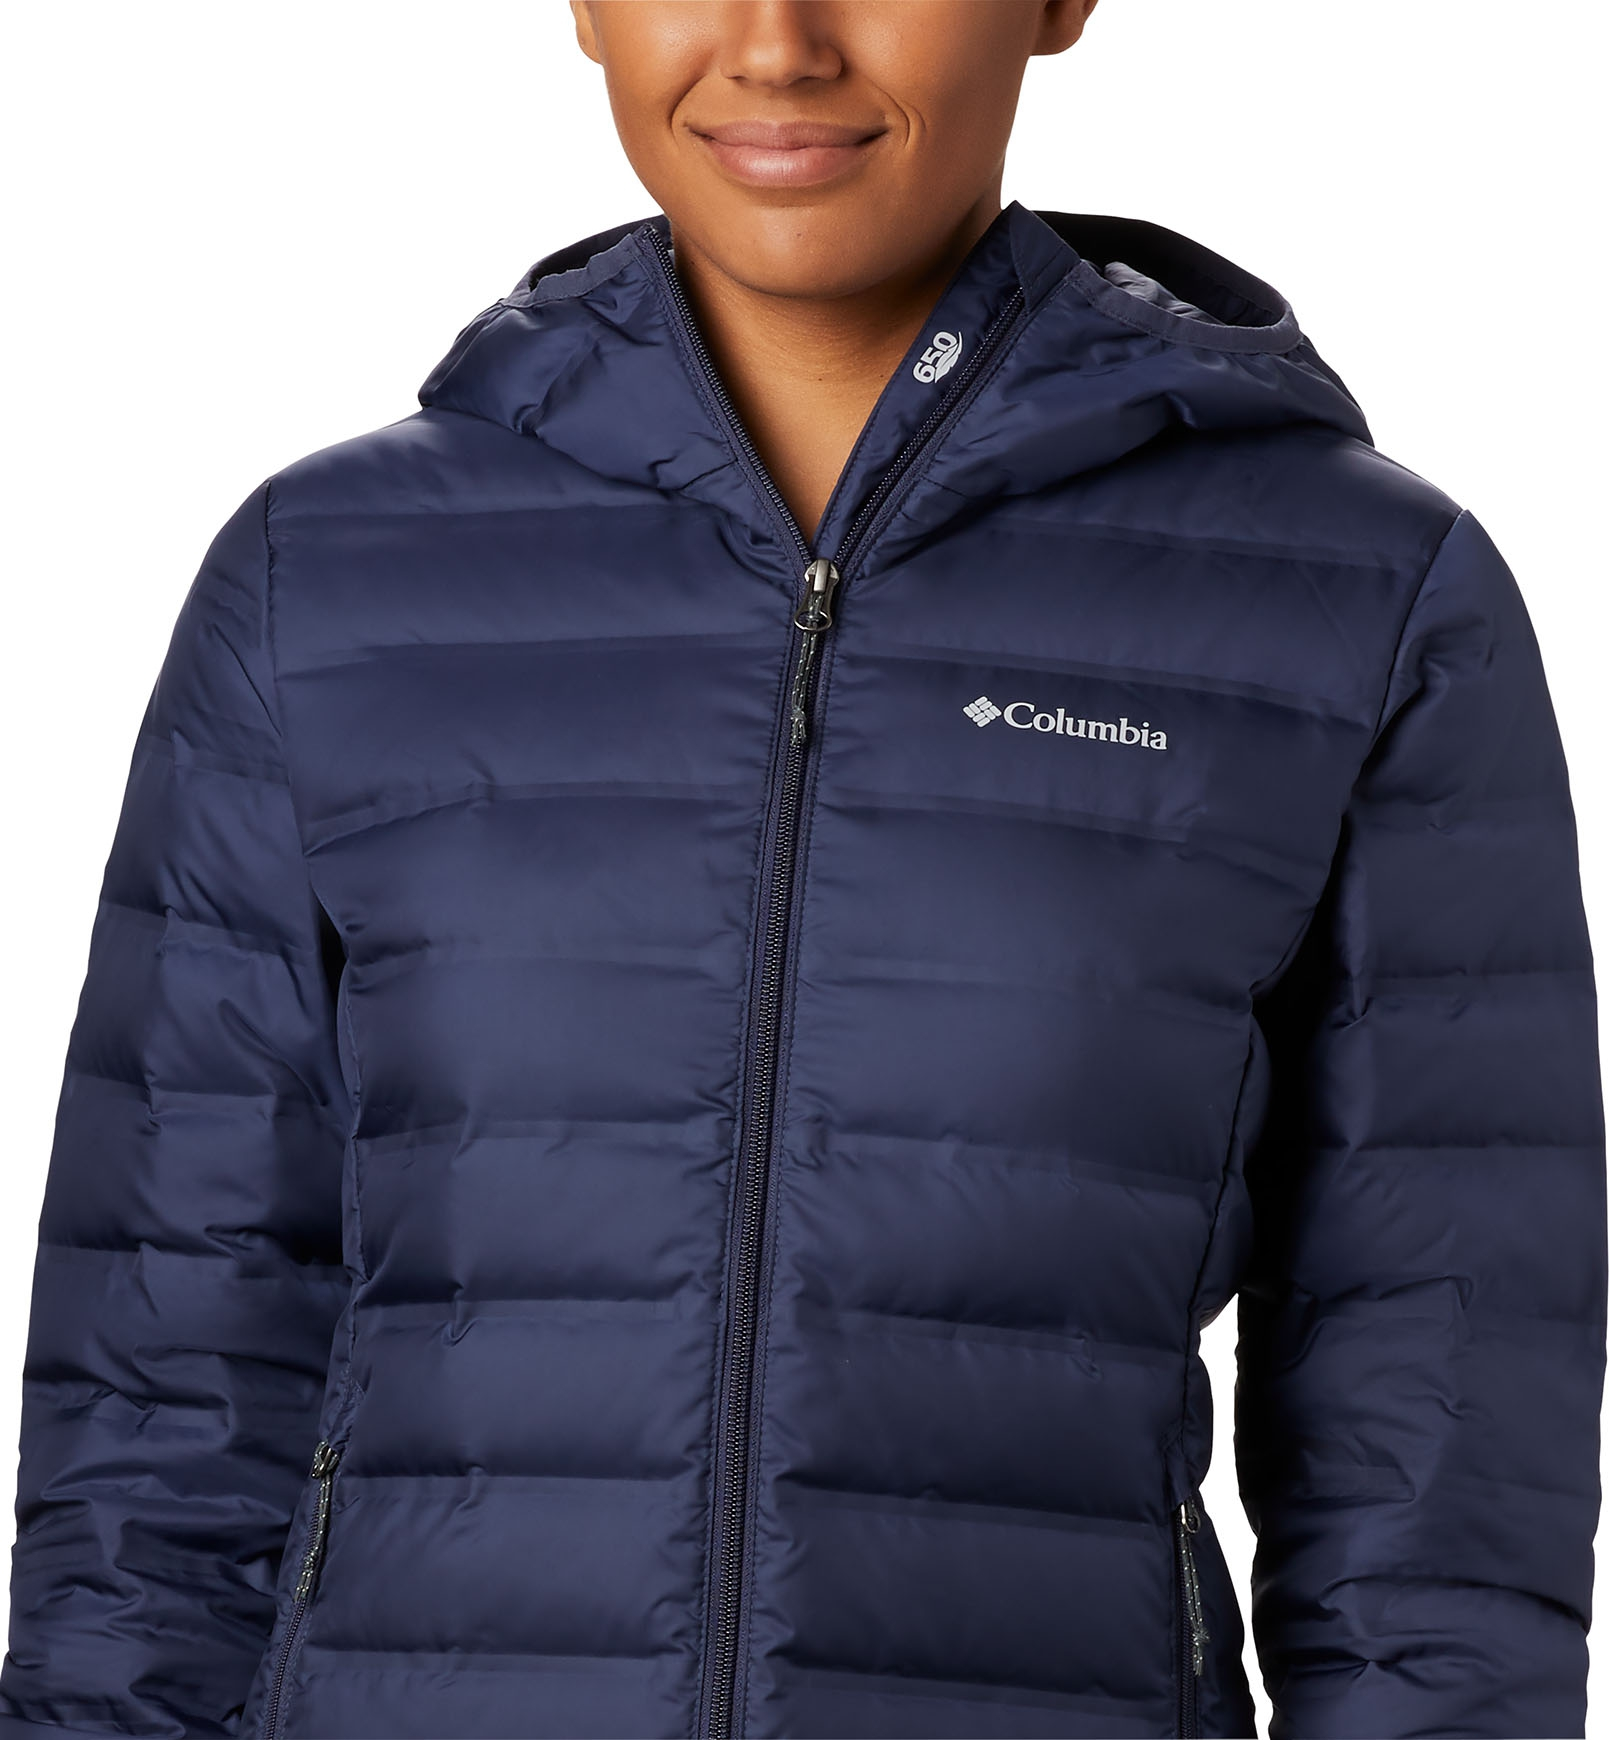 Polyester Lake 22 Hooded Jacket Columbia Kapuzenjacke f/ür Damen